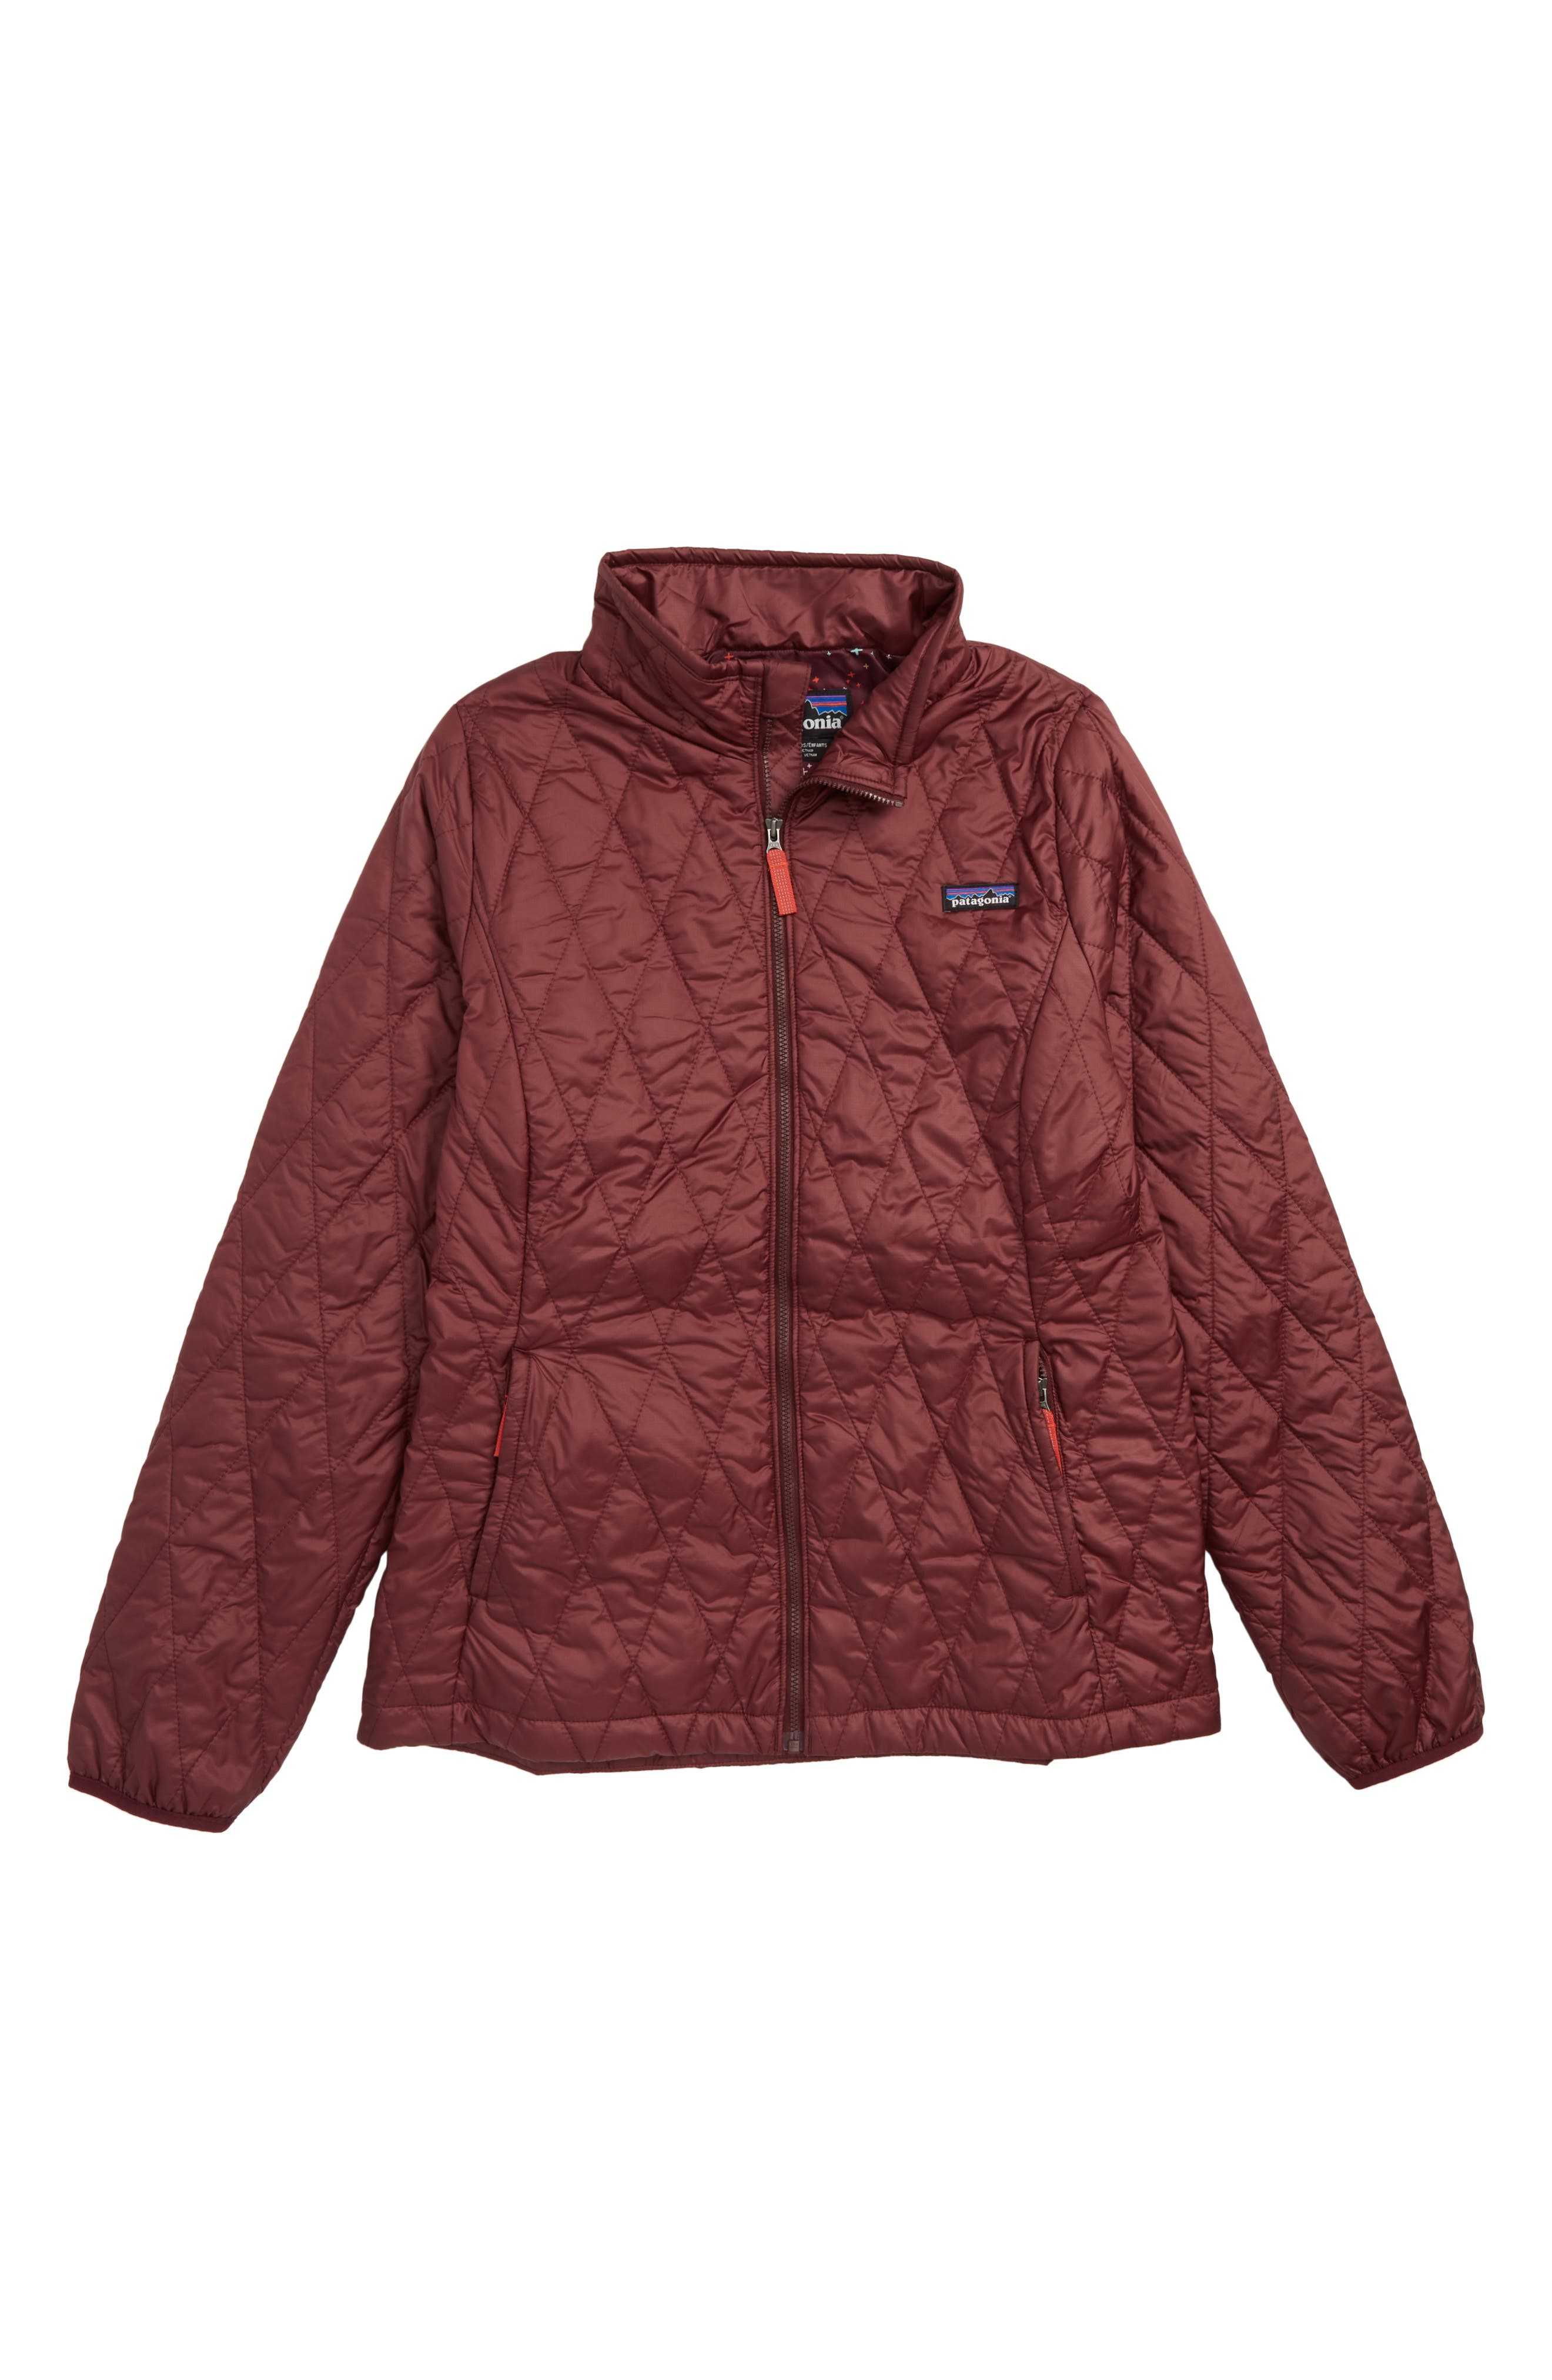 Nano Puff<sup>®</sup> Quilted Water Resistant Jacket, Main, color, DARK CURRANT